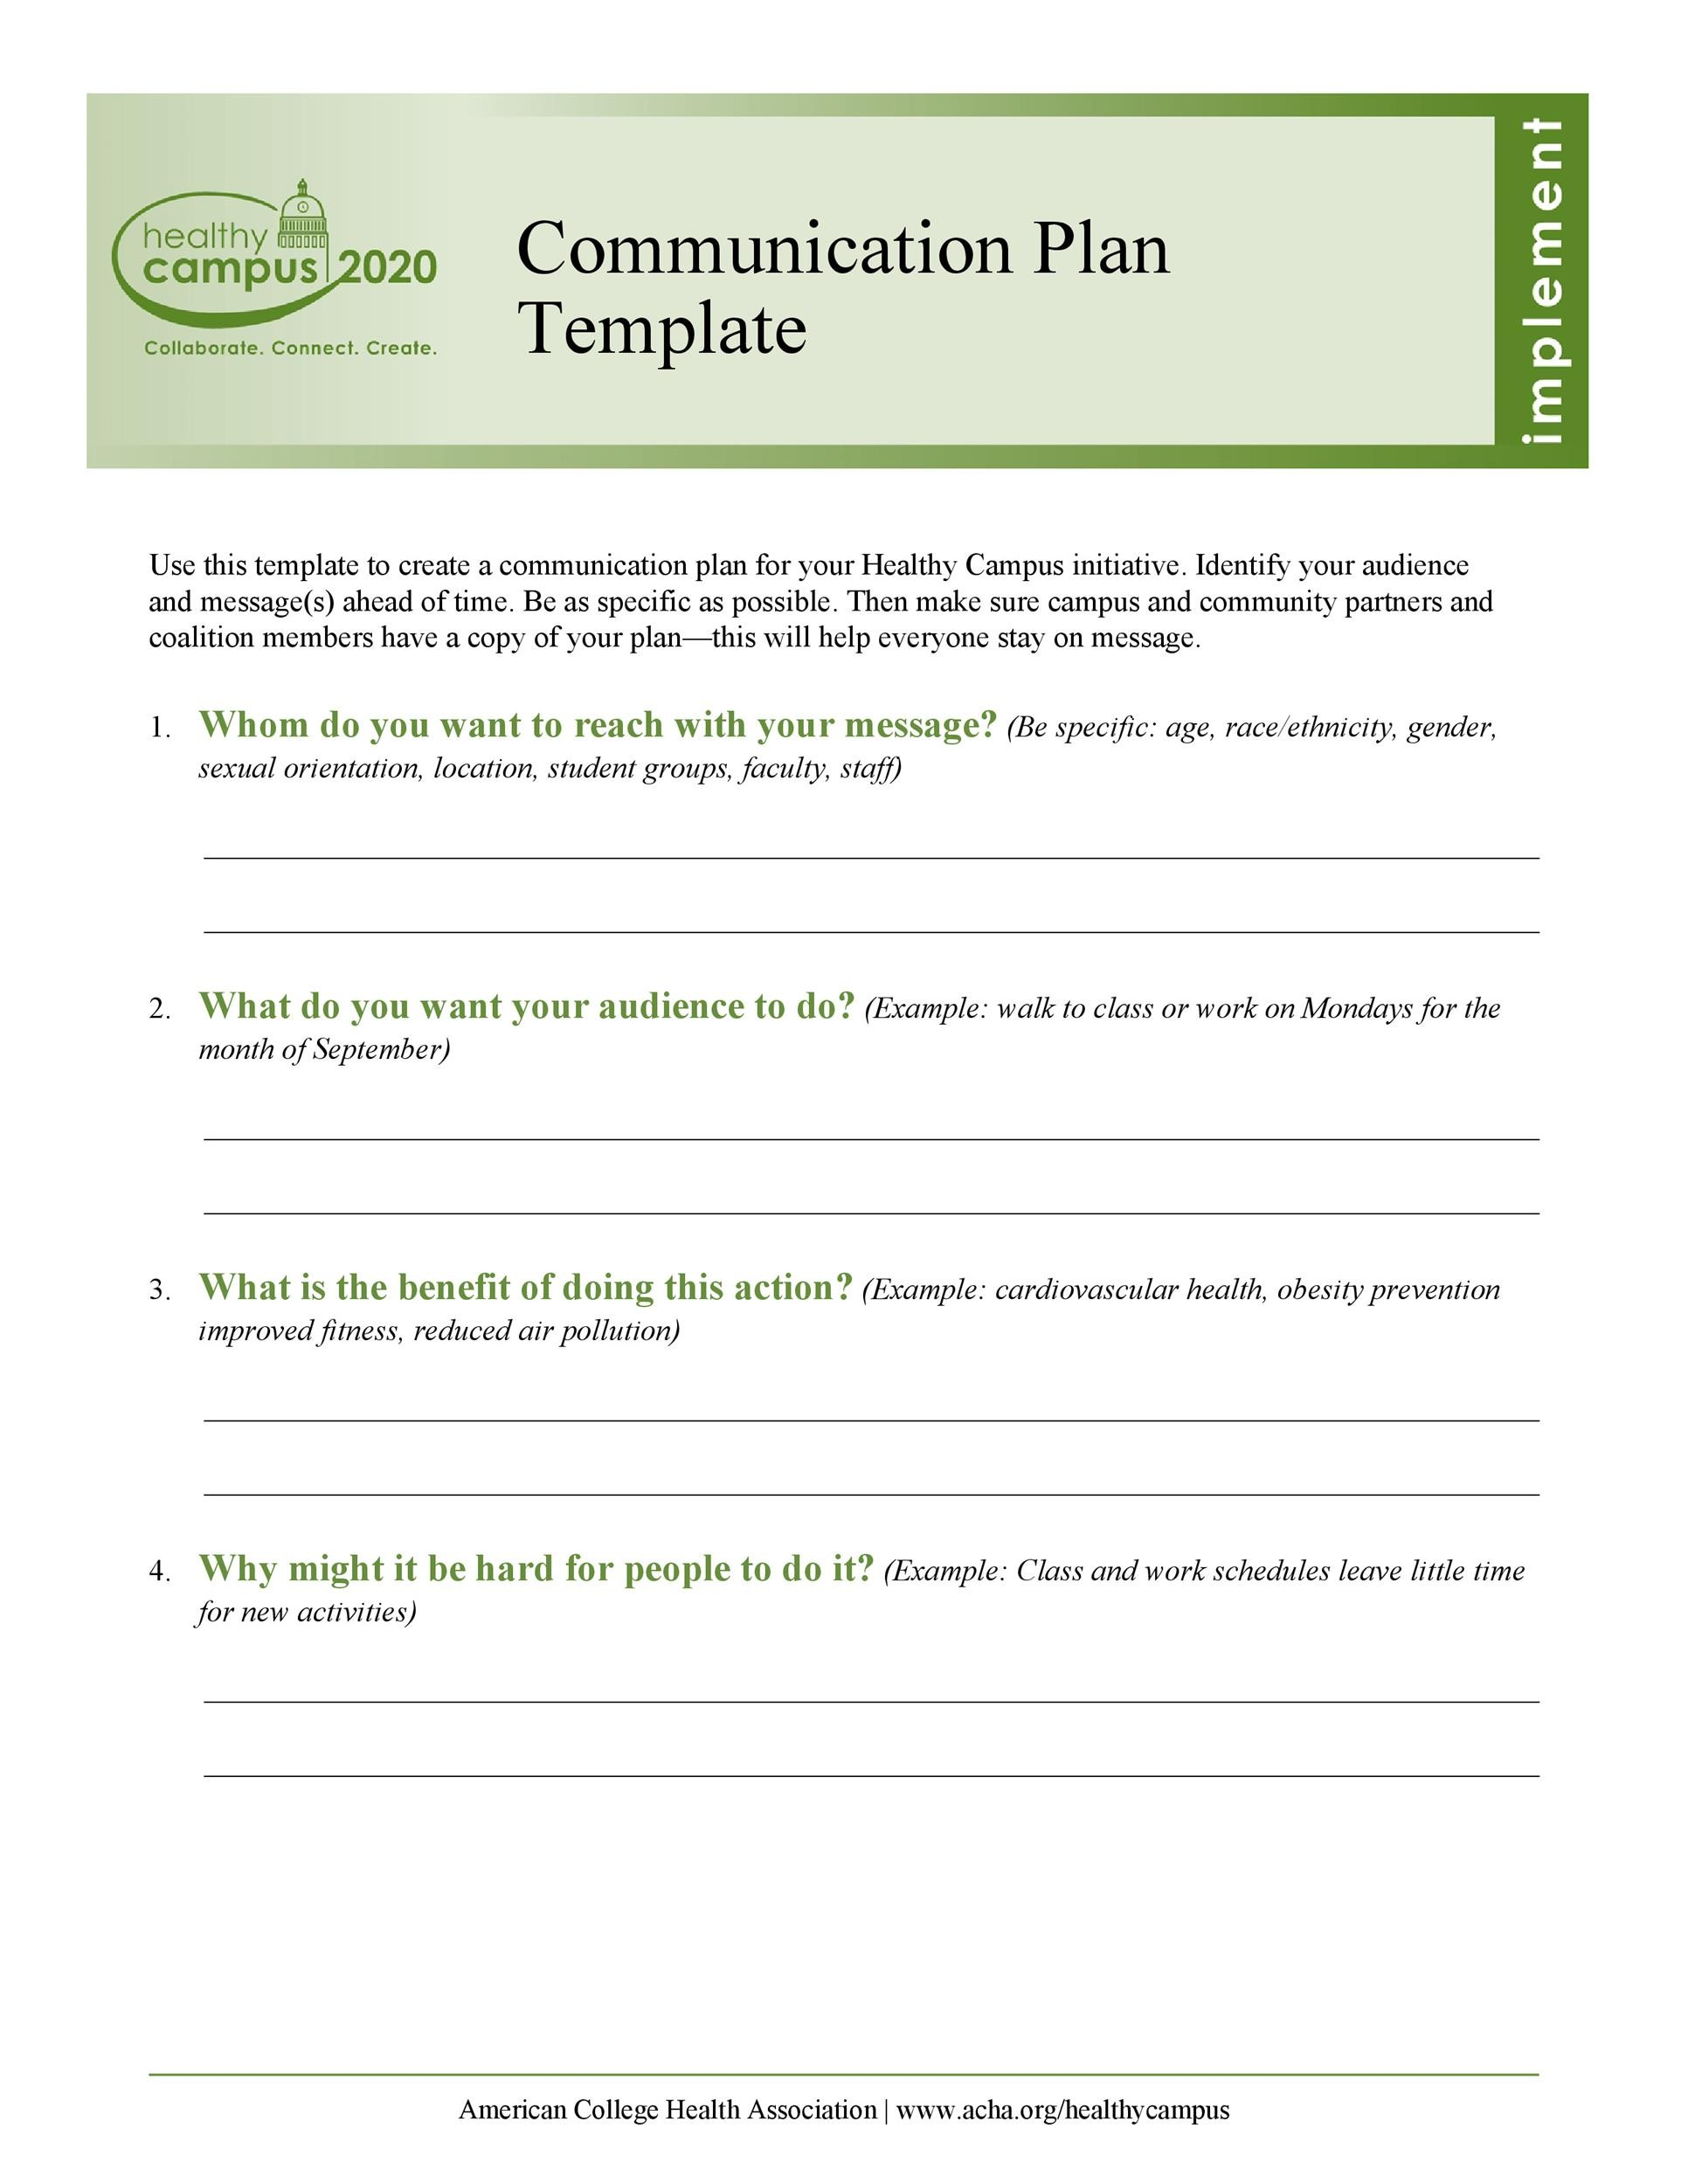 37 Simple Communication Plan Examples (+ Free Templates) ᐅ Template Lab